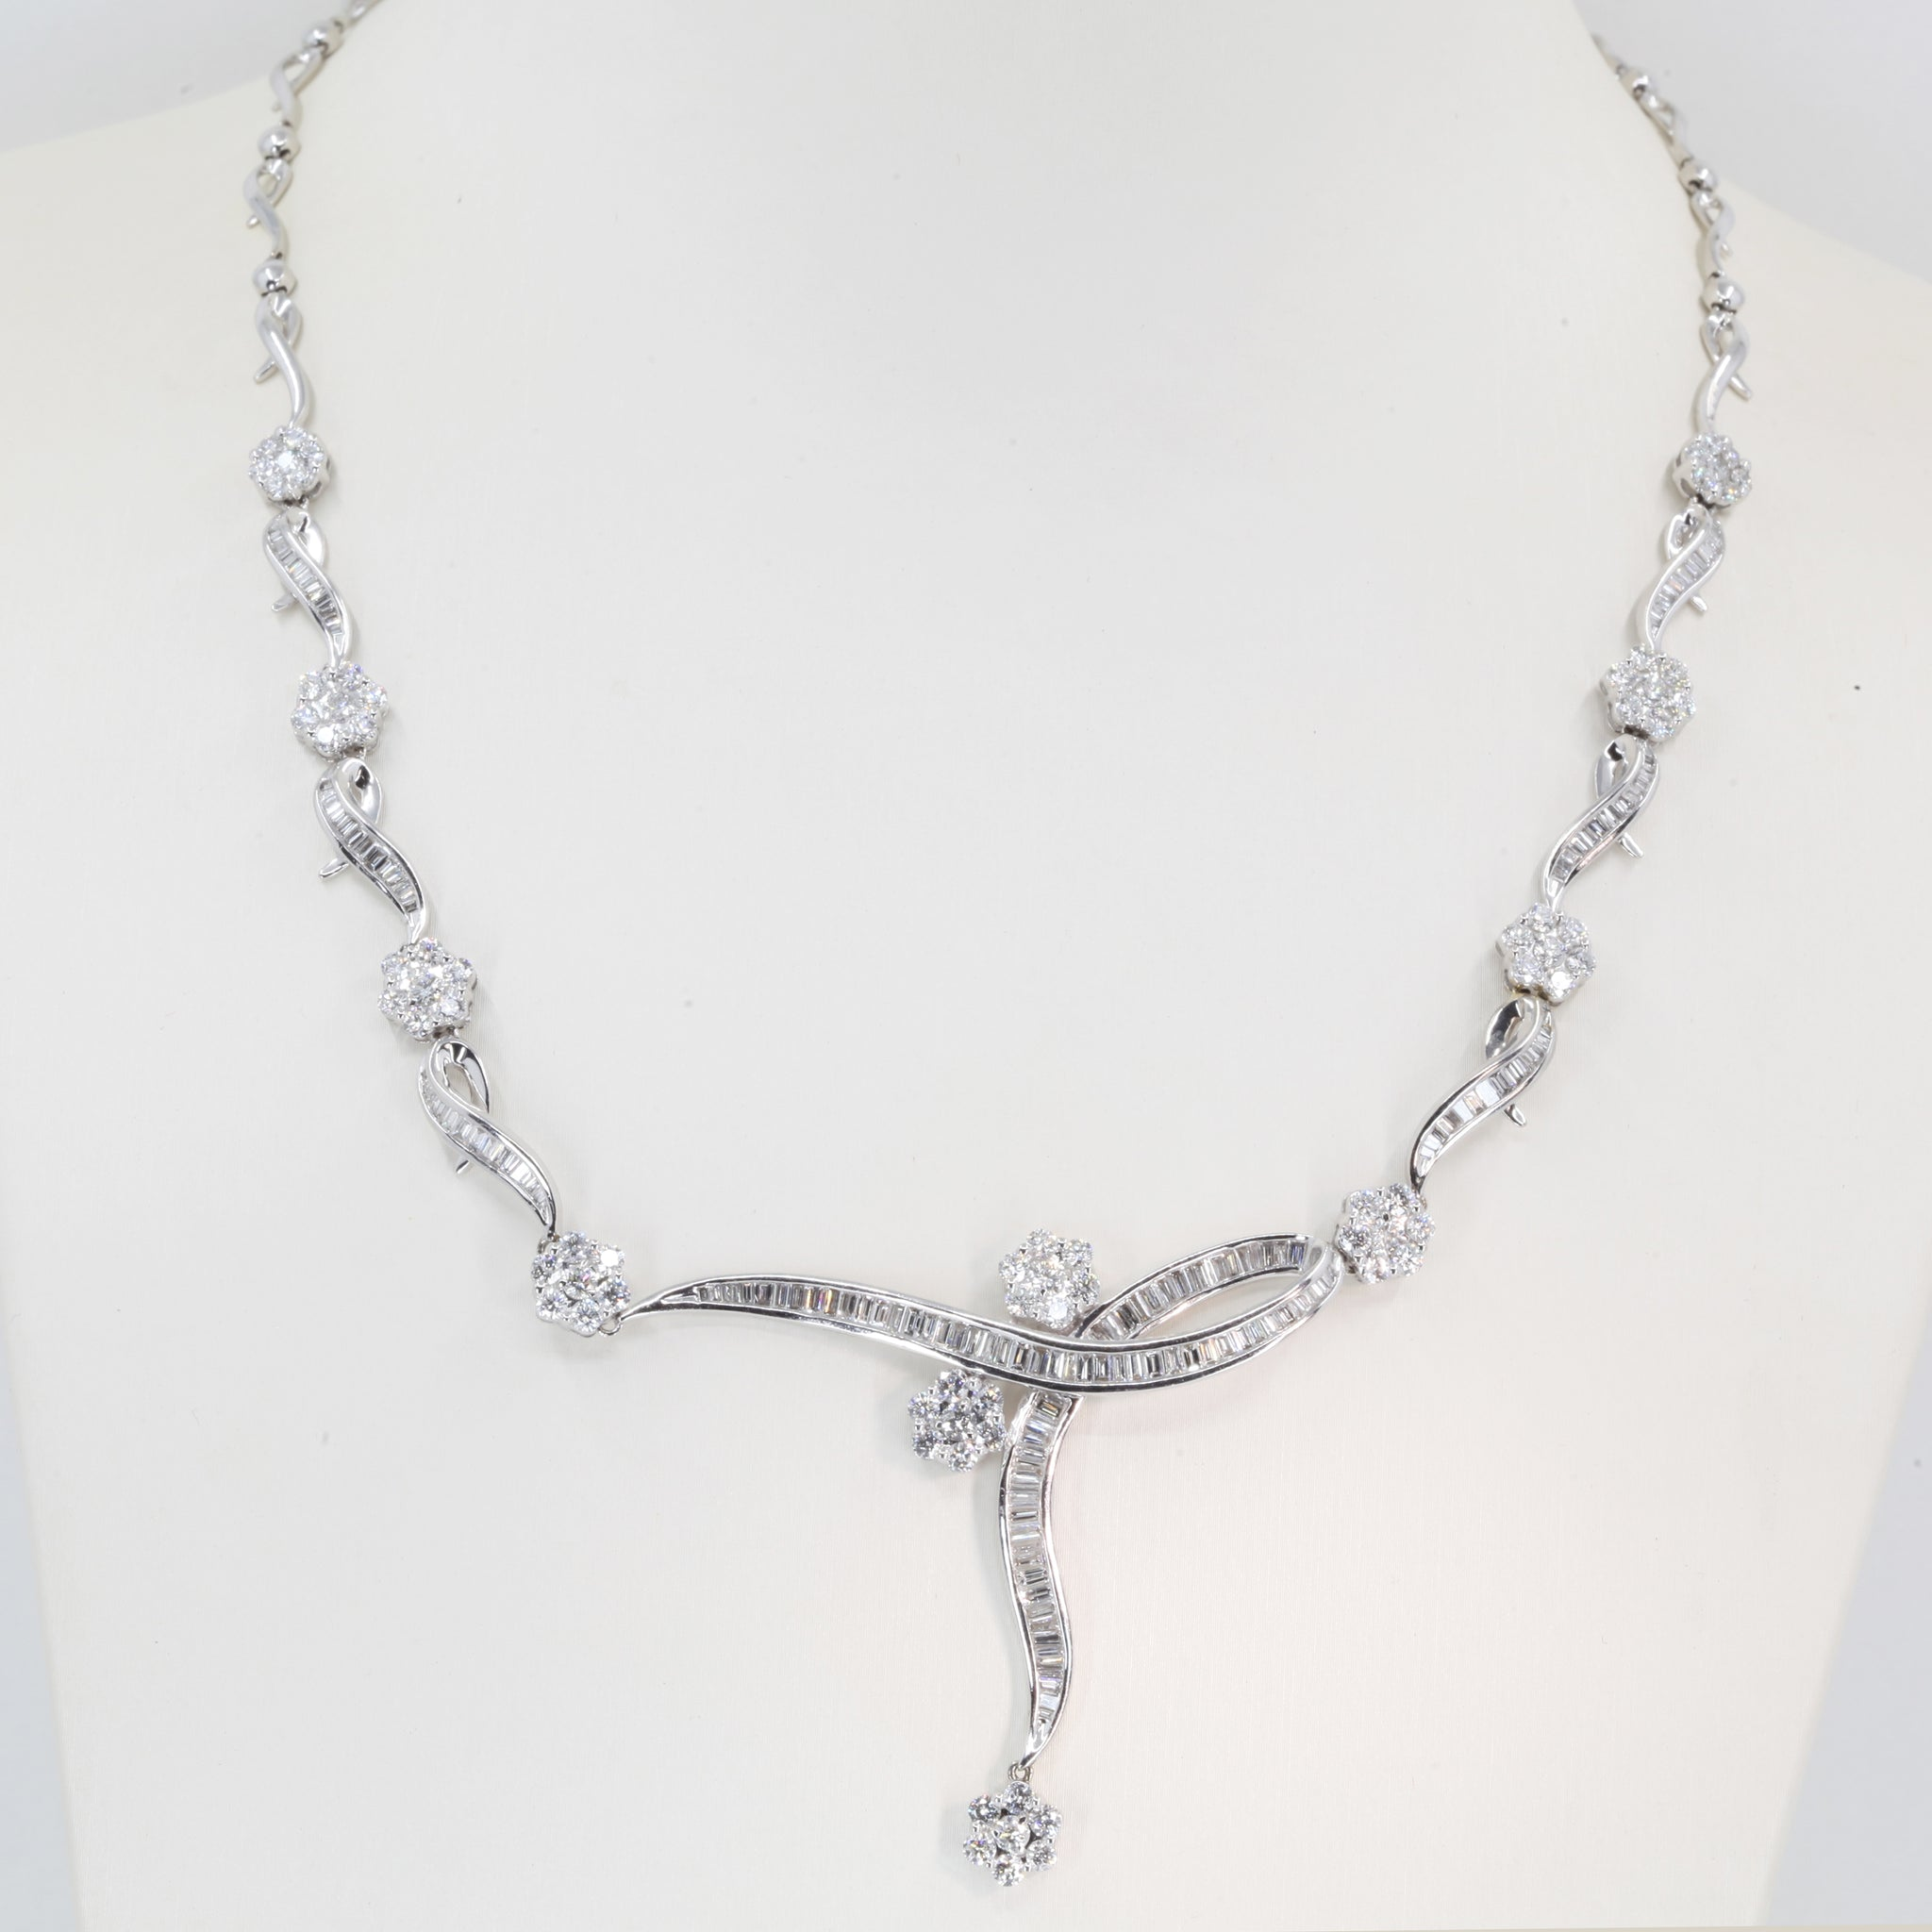 18K Solid White Gold Diamond Necklace 6.05 CT